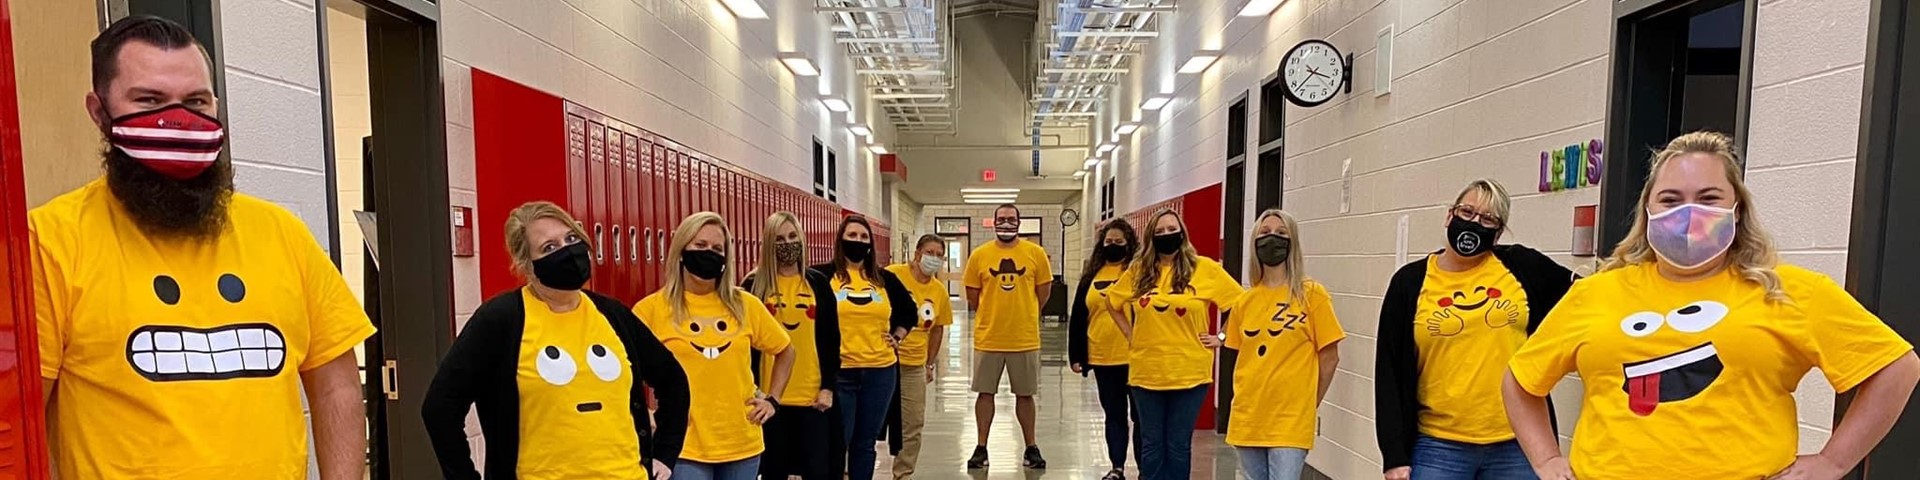 Middle School Teachers Wearing Their Emoji Shirts